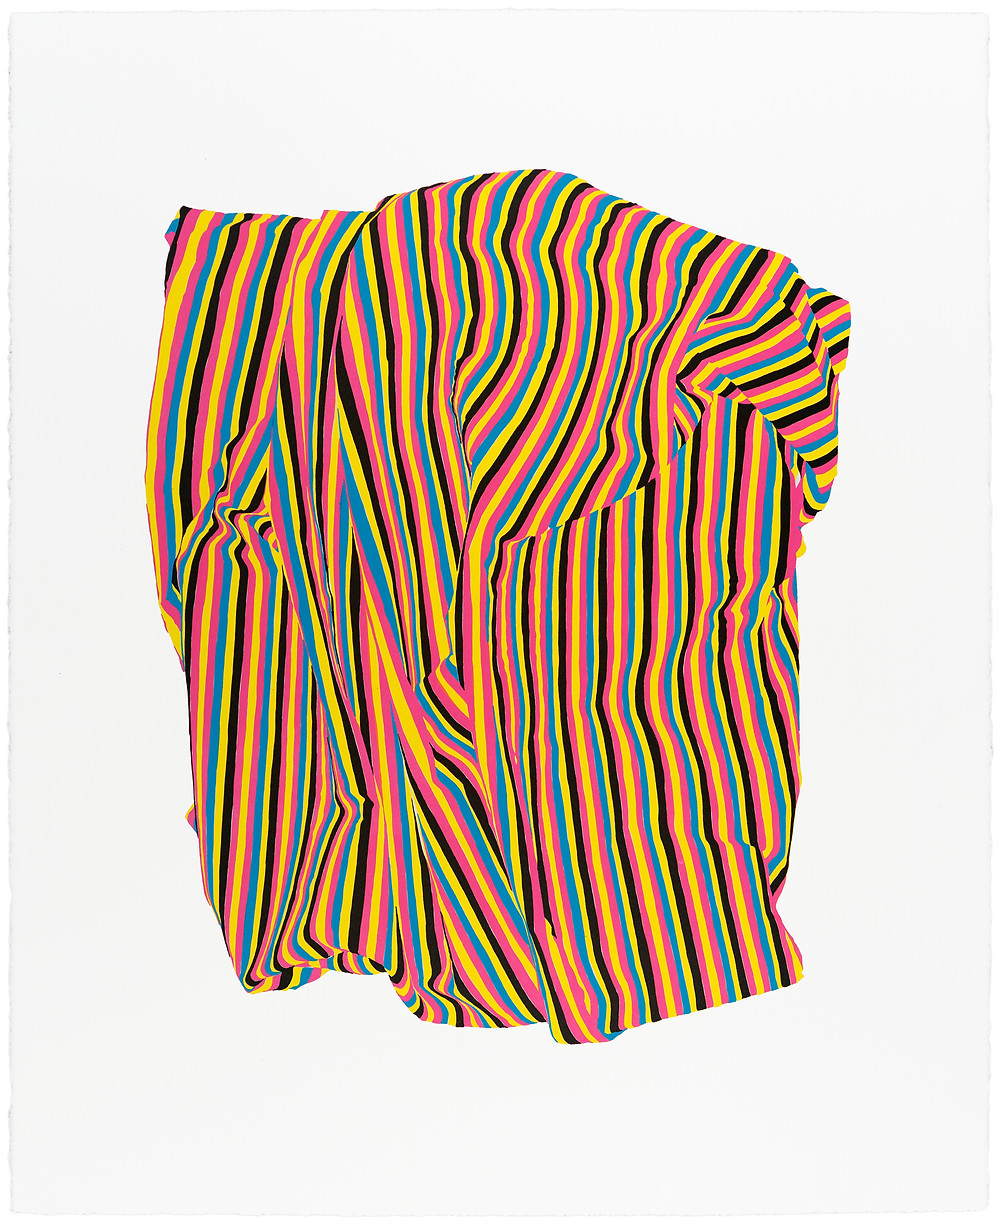 """""""Stripescape II"""" Four-color lithograph on Somerset satin paper. Limited edition of 50. 22 1/4 x 28"""" Published by Petrichor Press. Printed by Peter Haarz, TMP."""